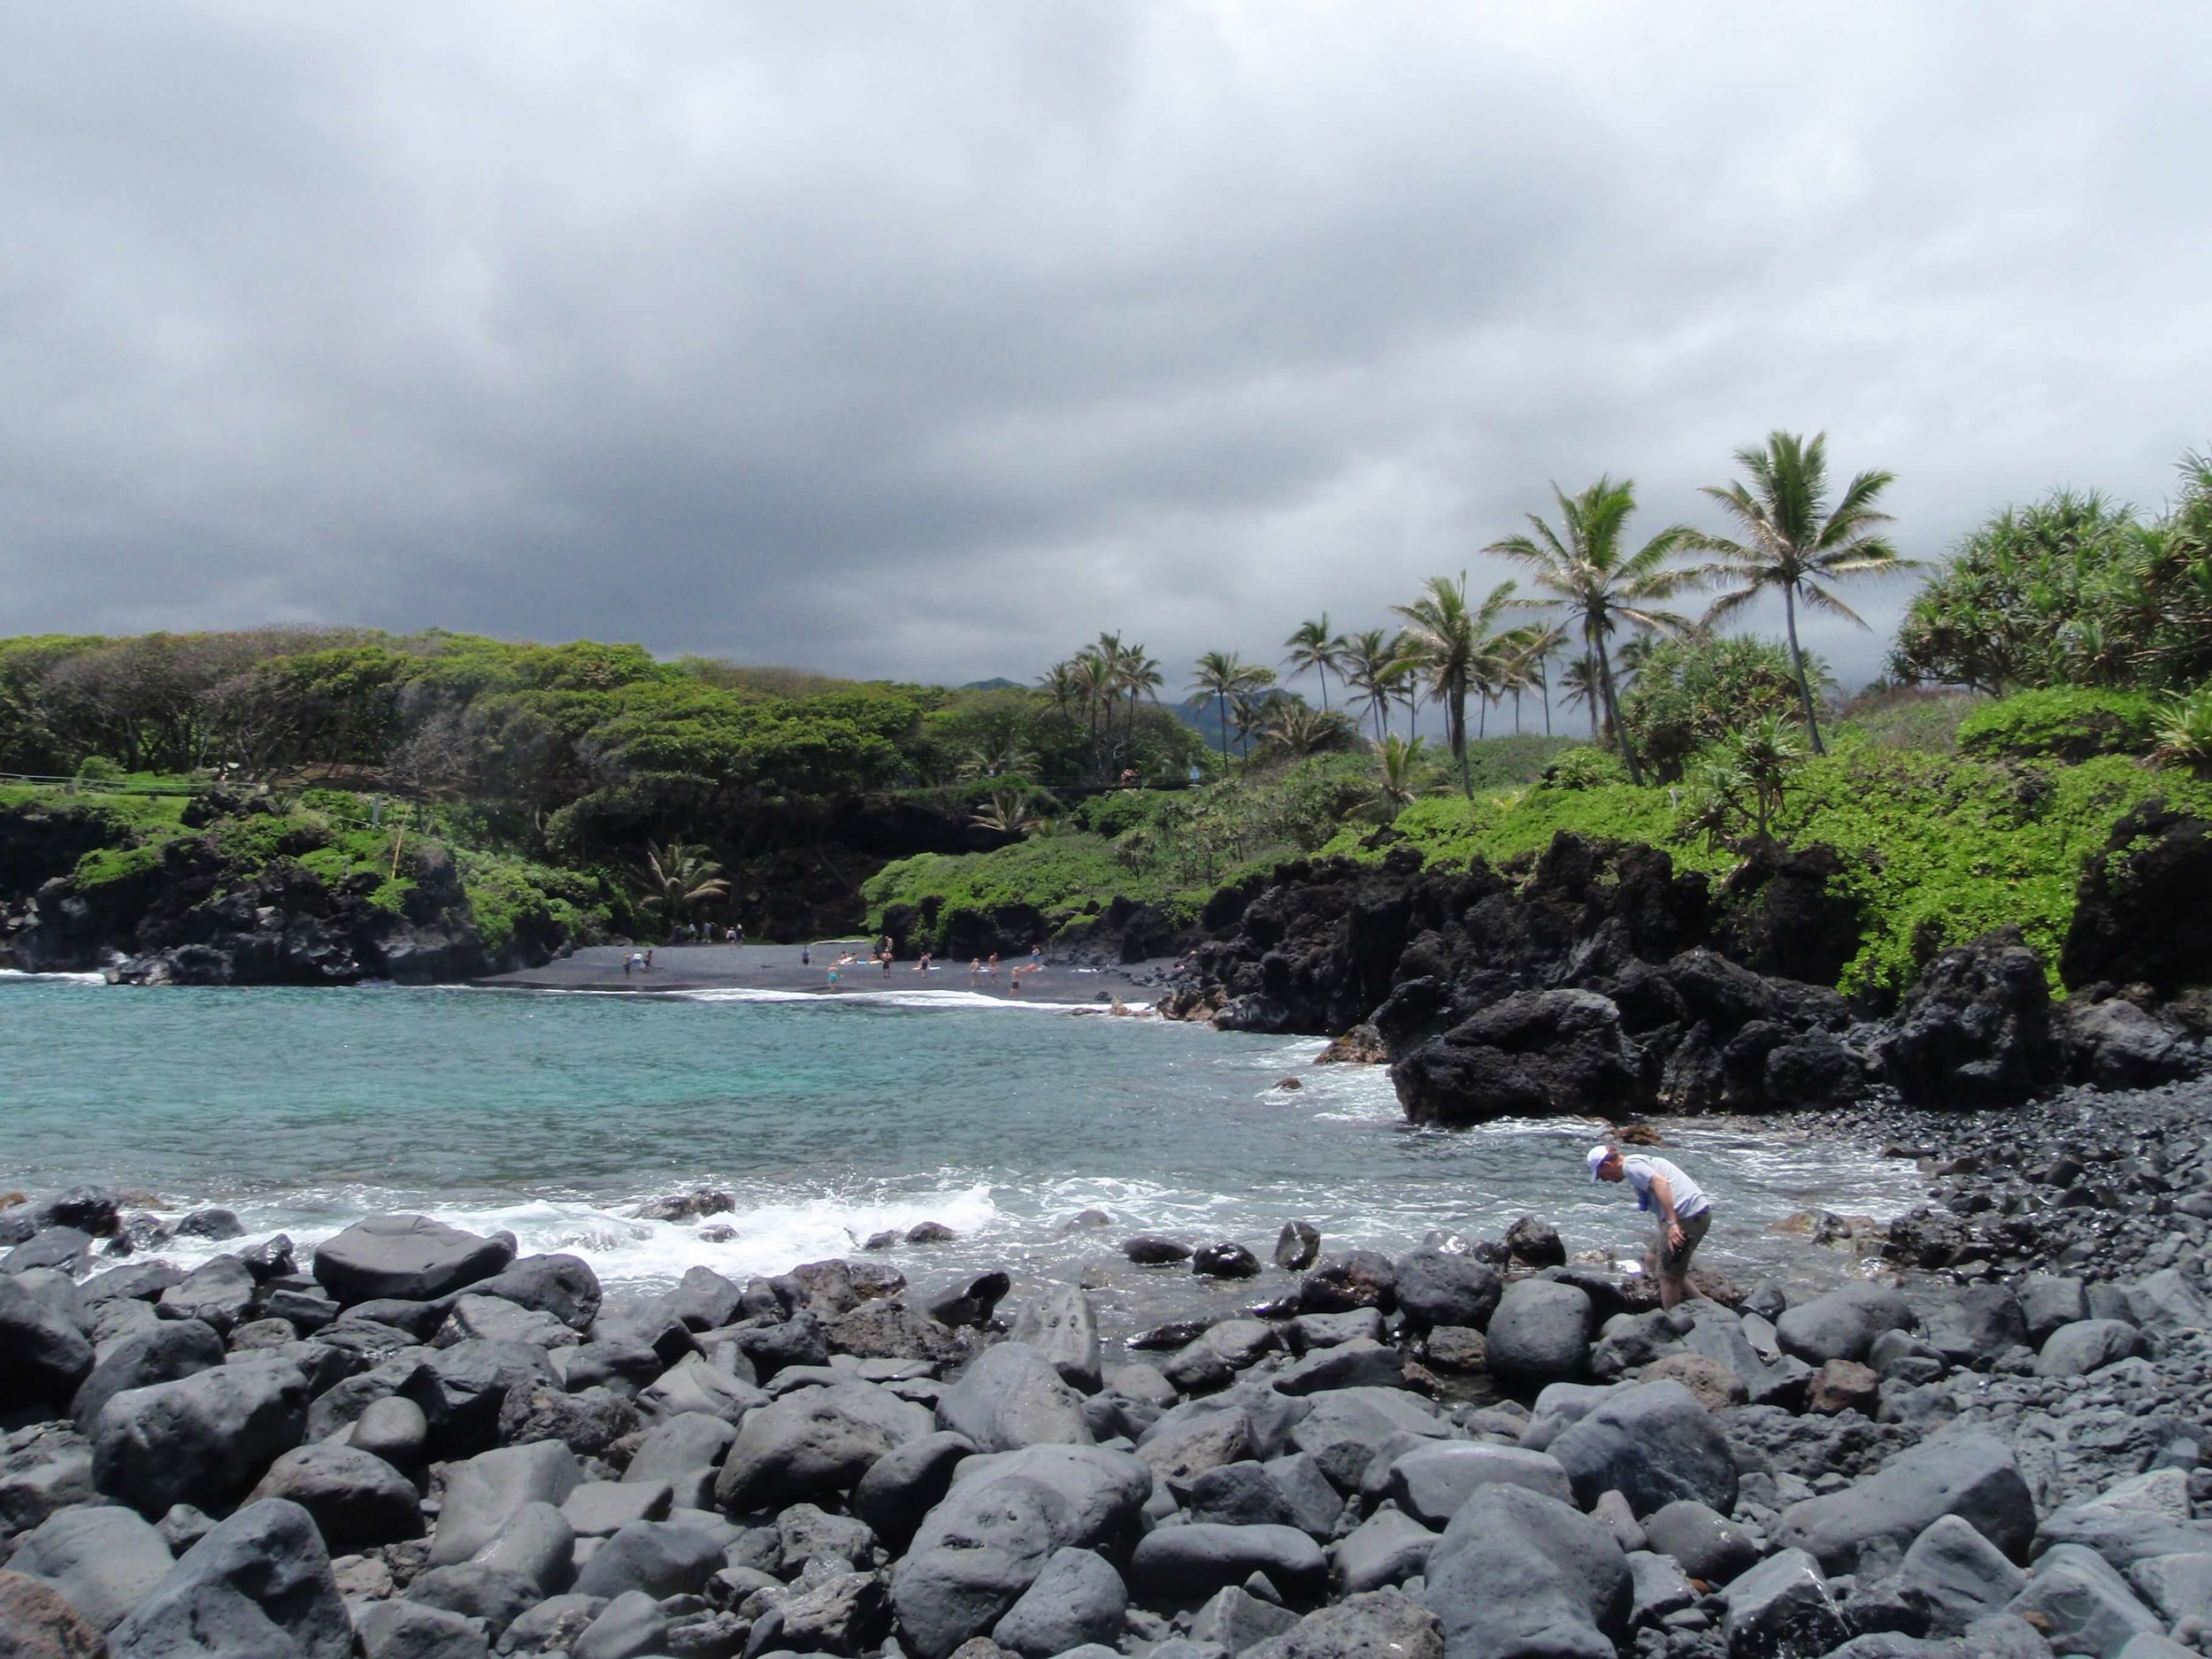 Wainapanapa State Park | Discover the 10 best things to do in Maui with these insider tips from an ex-resident. #maui #travel #hawaii